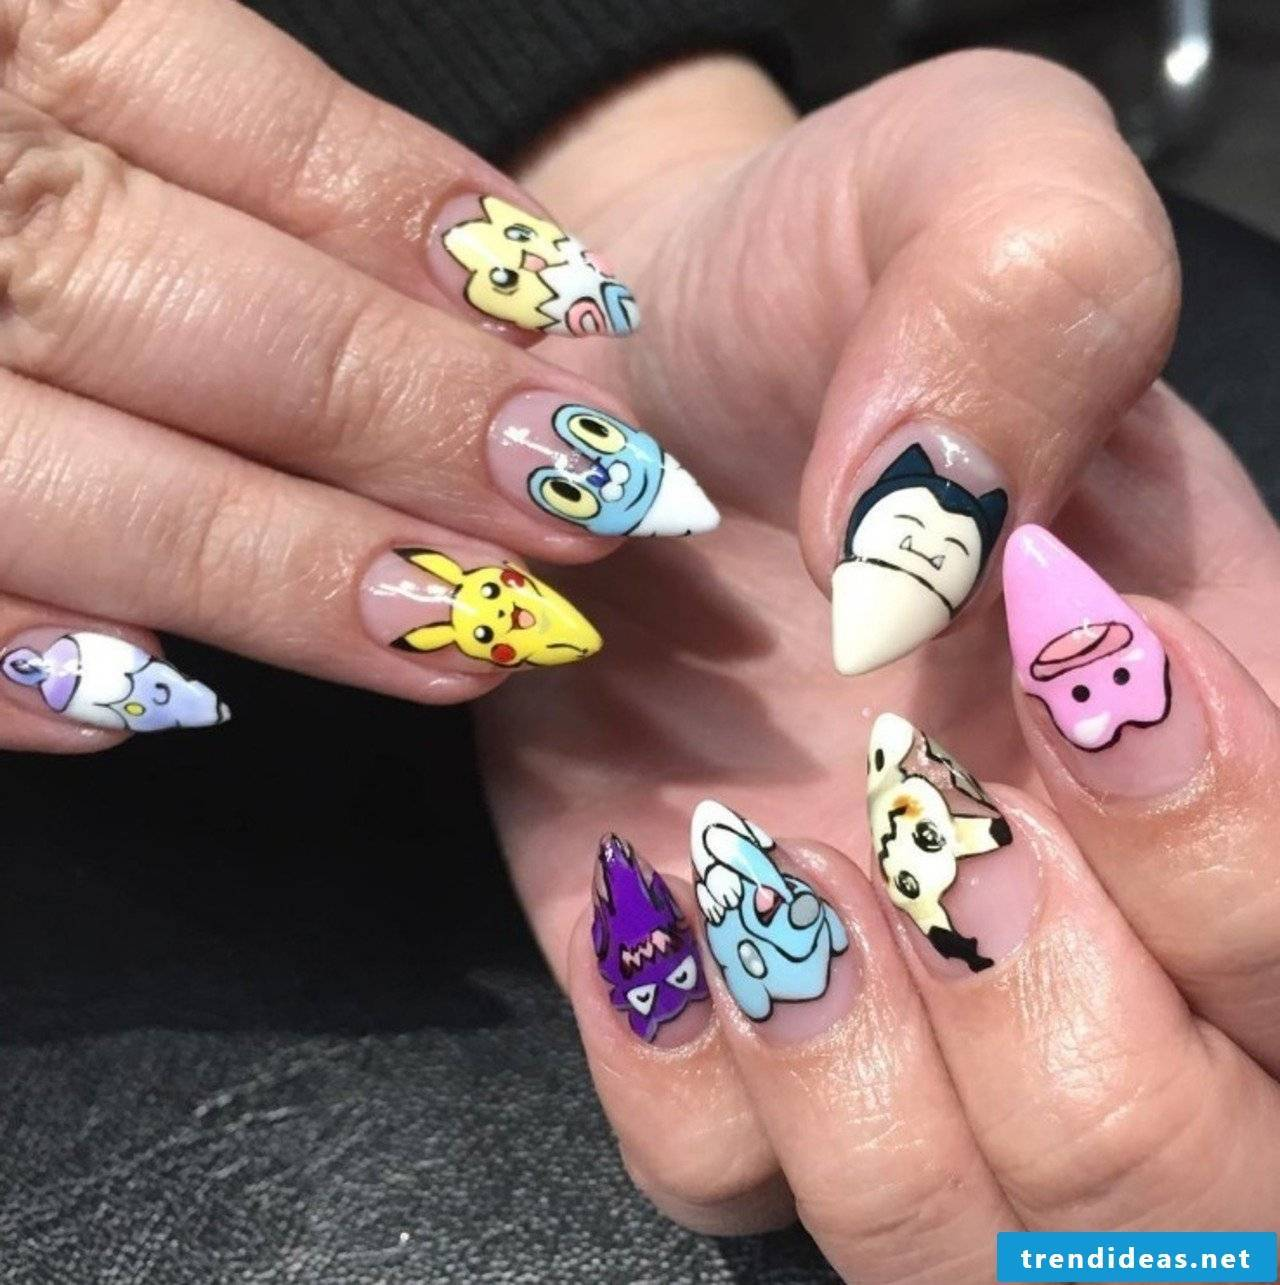 Funny fingernails images